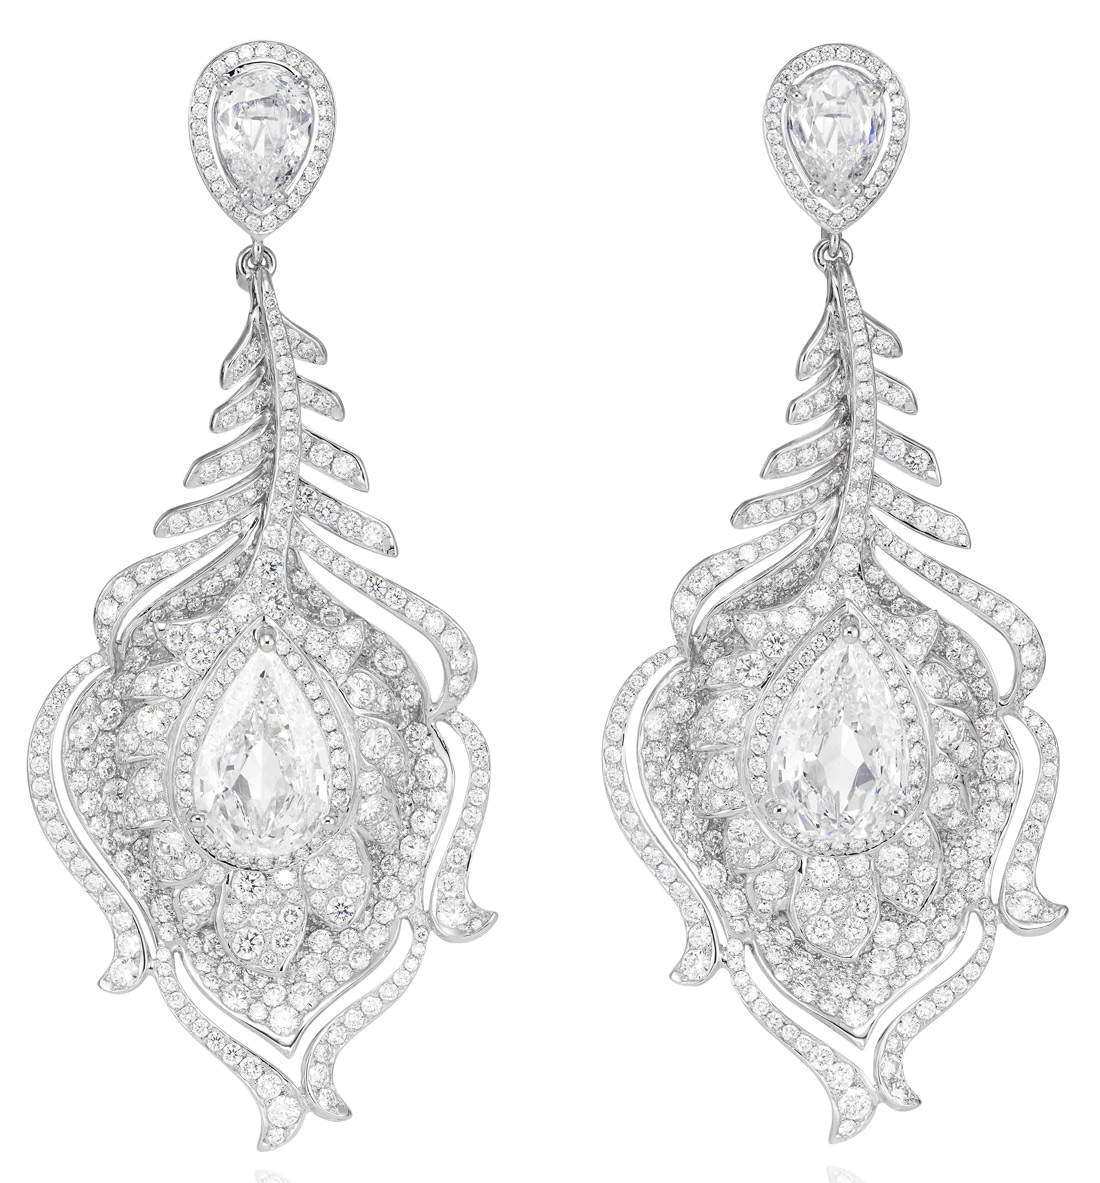 Chopard Feather Earrings from the Red Carpet Collection